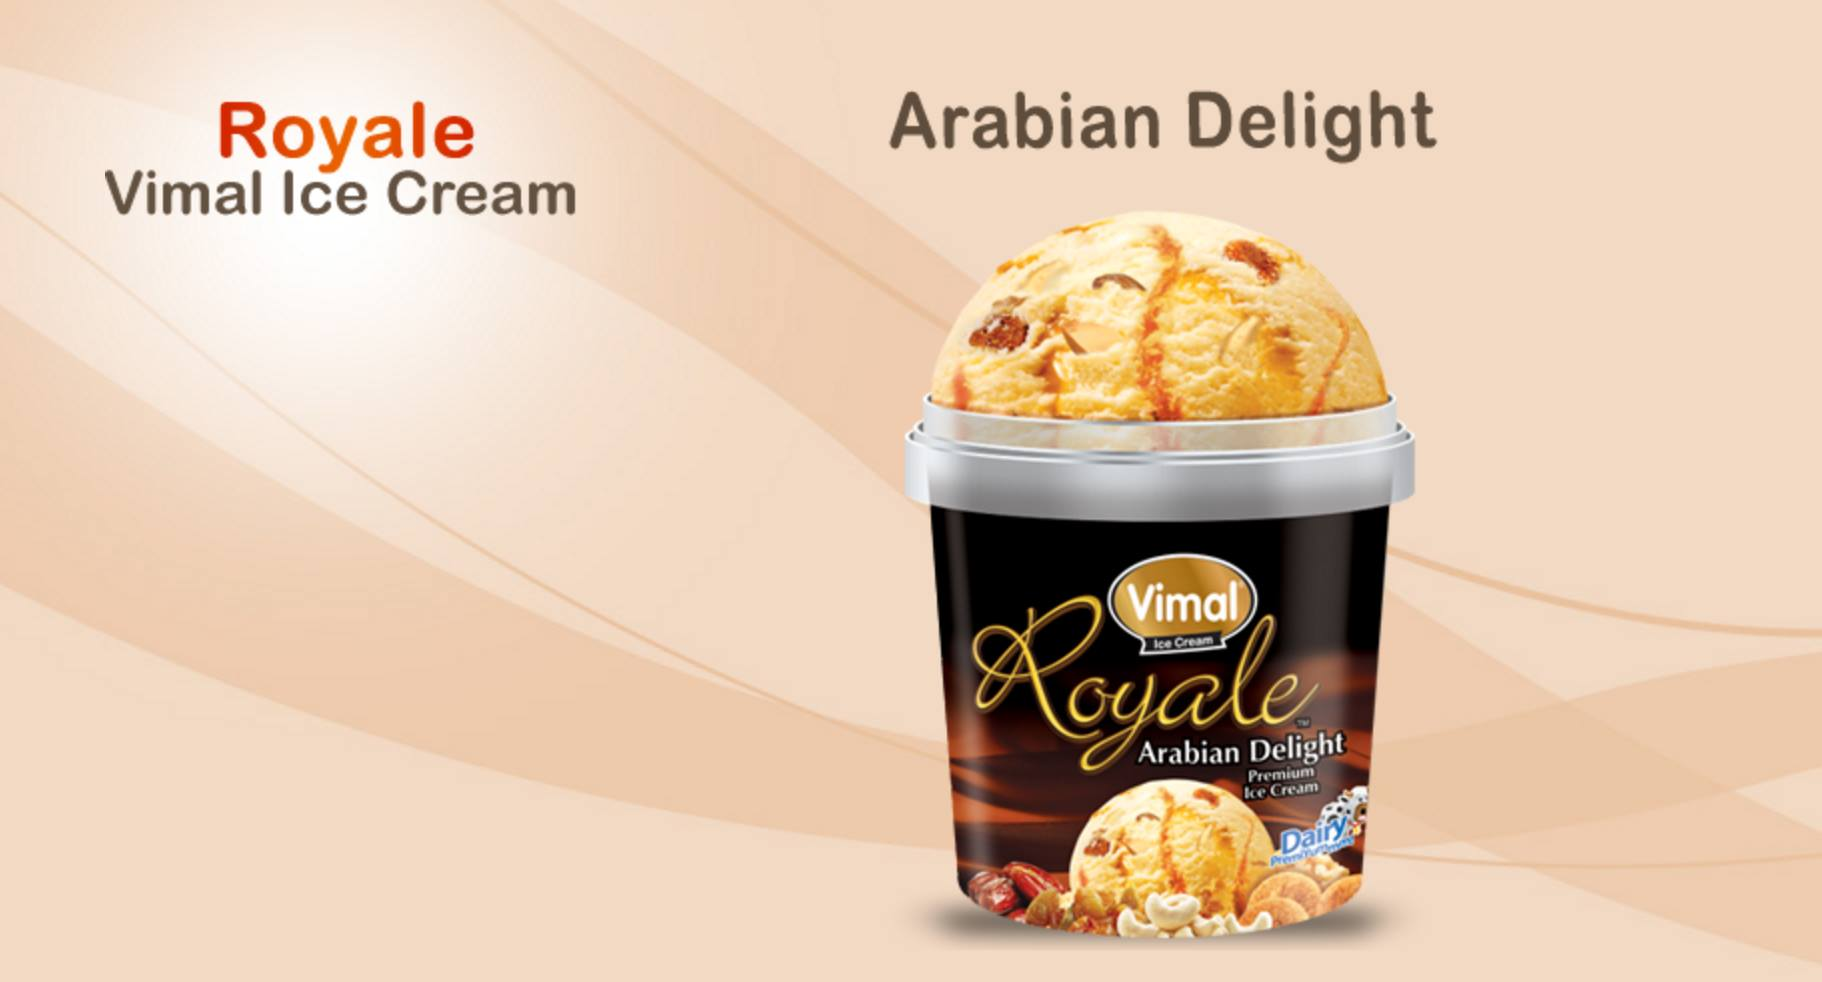 Vimal Ice Cream,  IceCreamLovers, Vimal, ICecream, Ahmedabad